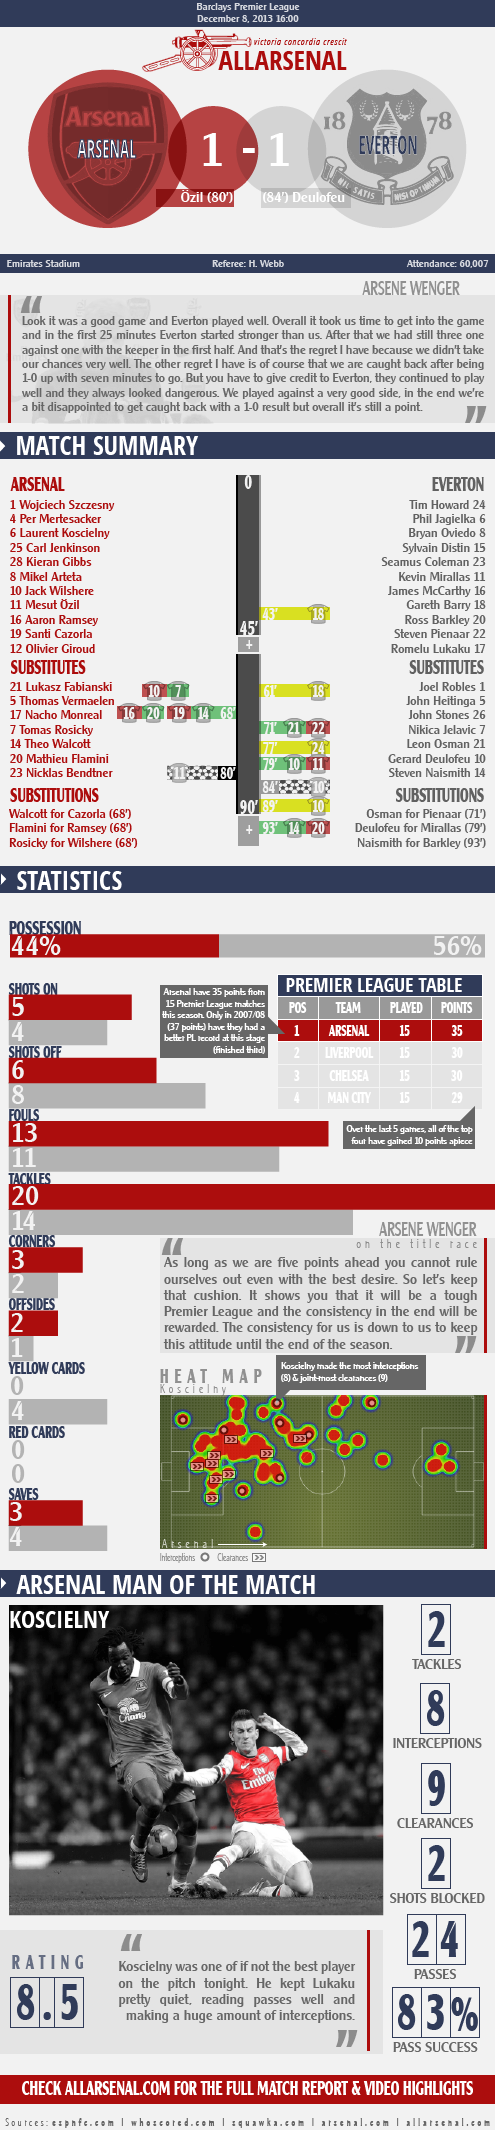 allarsenal-arsenal vs everton infographic131208-01